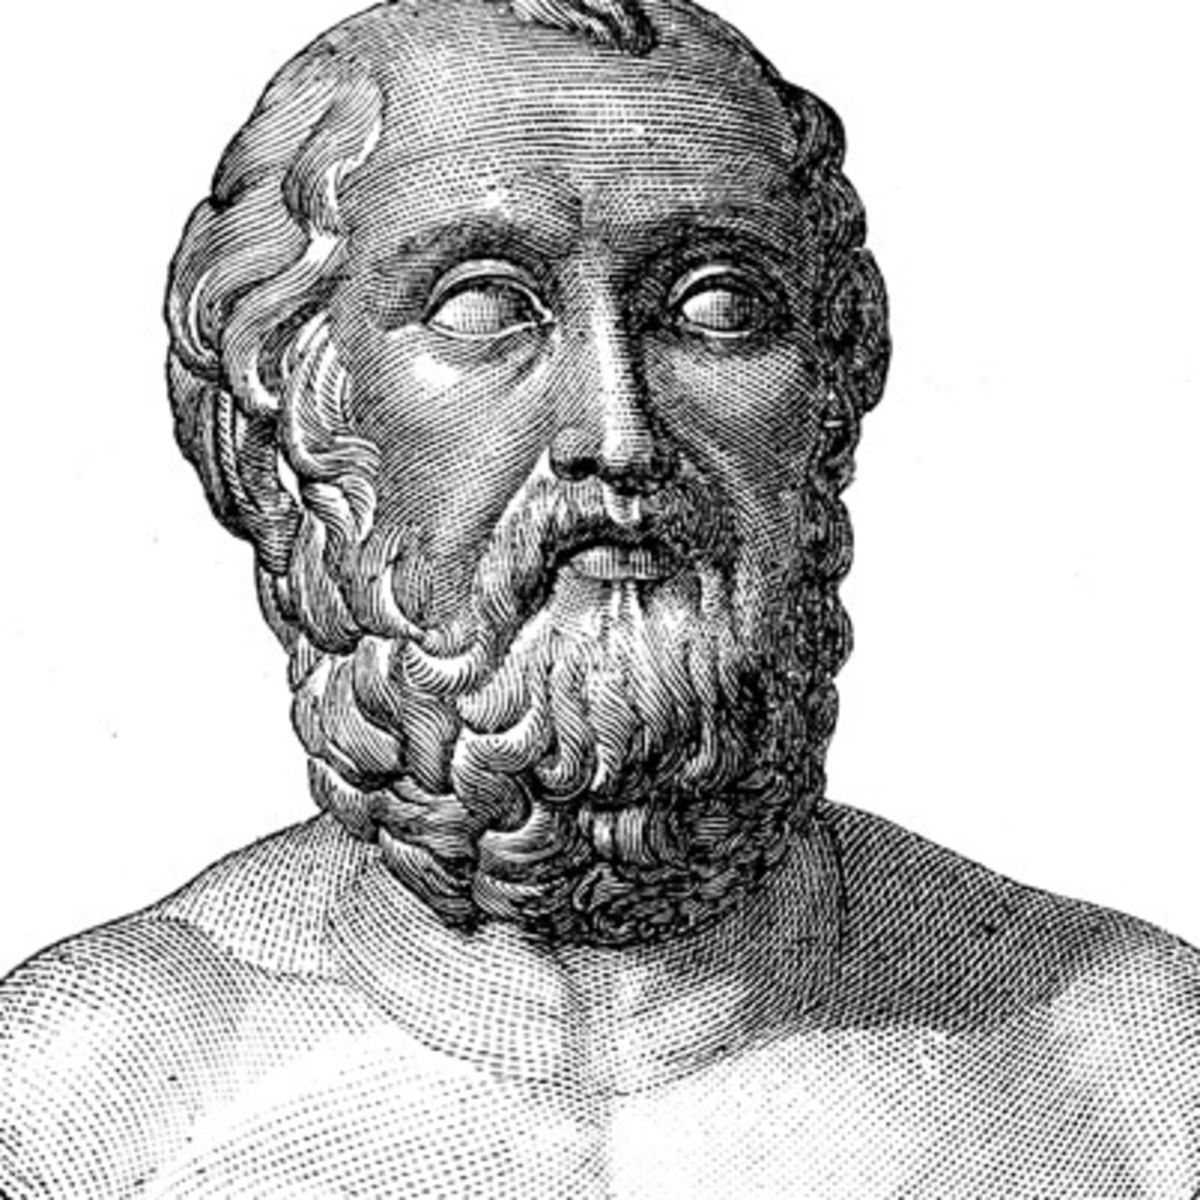 Resume of plato philosopher